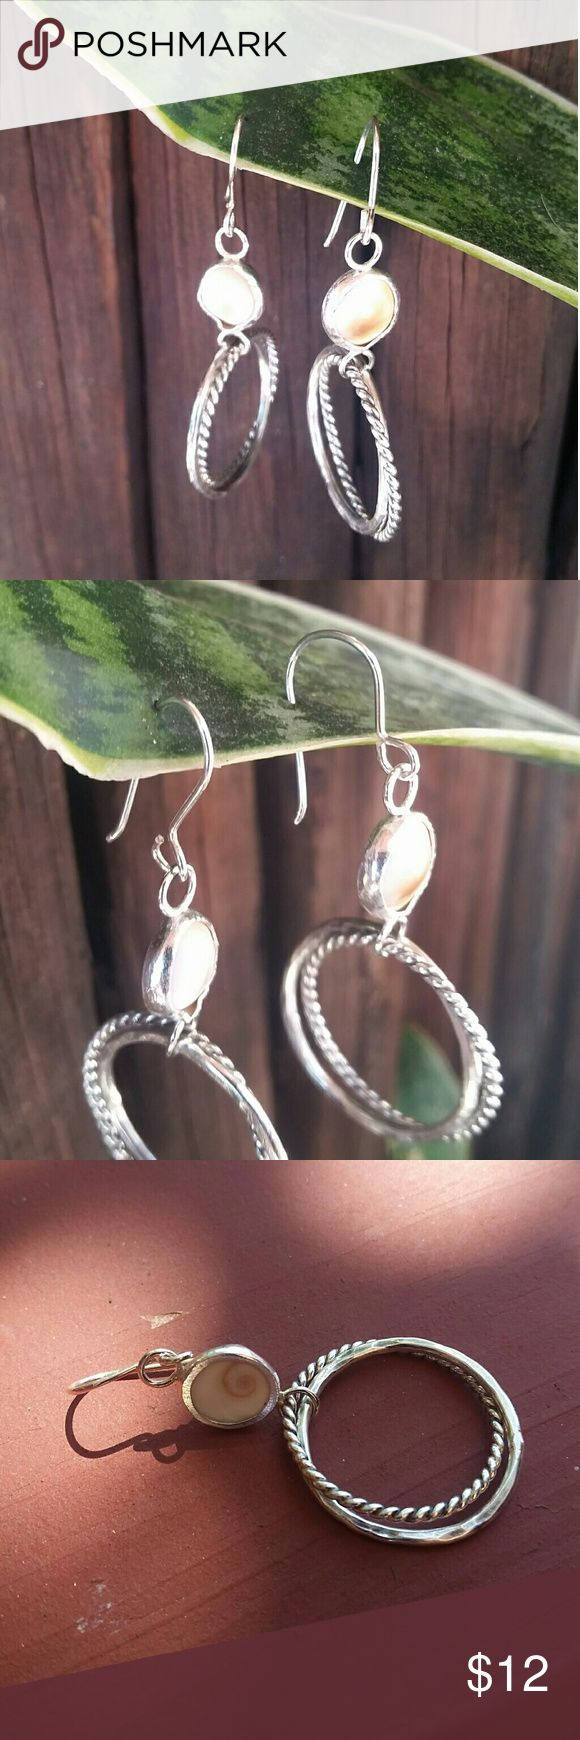 NEW LISTING Silver Earrings Double hoops, one hammered, one braided set off with a cowrie shell accent. Presumed SS but no stamp. Price reflects such. Jewelry Earrings